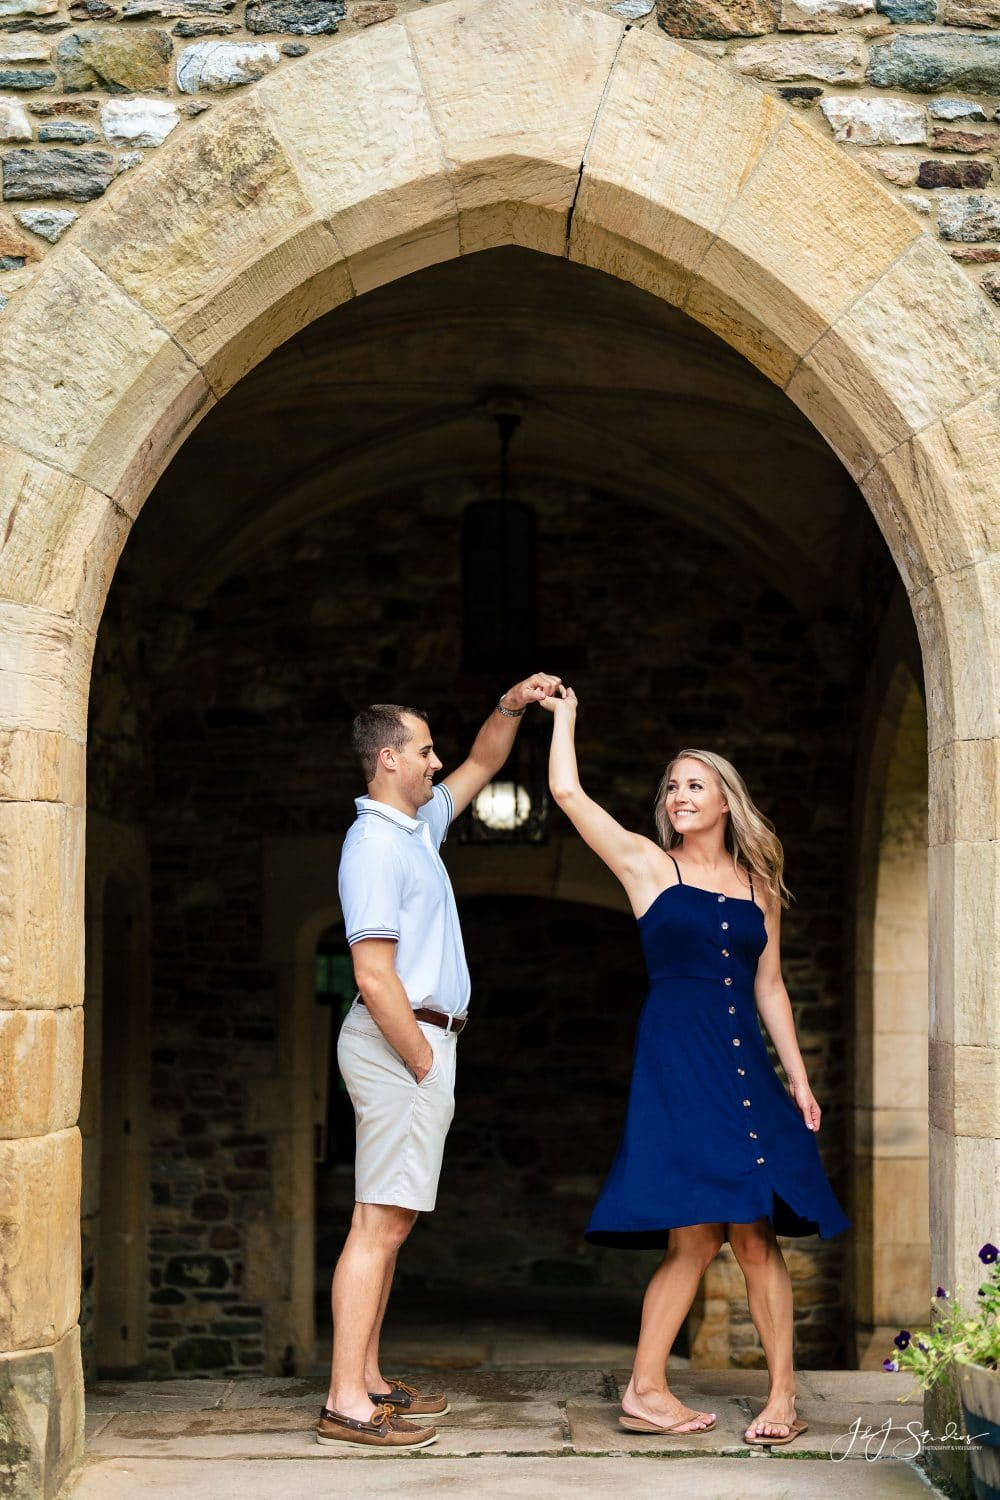 Couple dancing inside the arch at Ridley Creek State Park Hunting Hill Mansion Engagement Shot By John Ryan